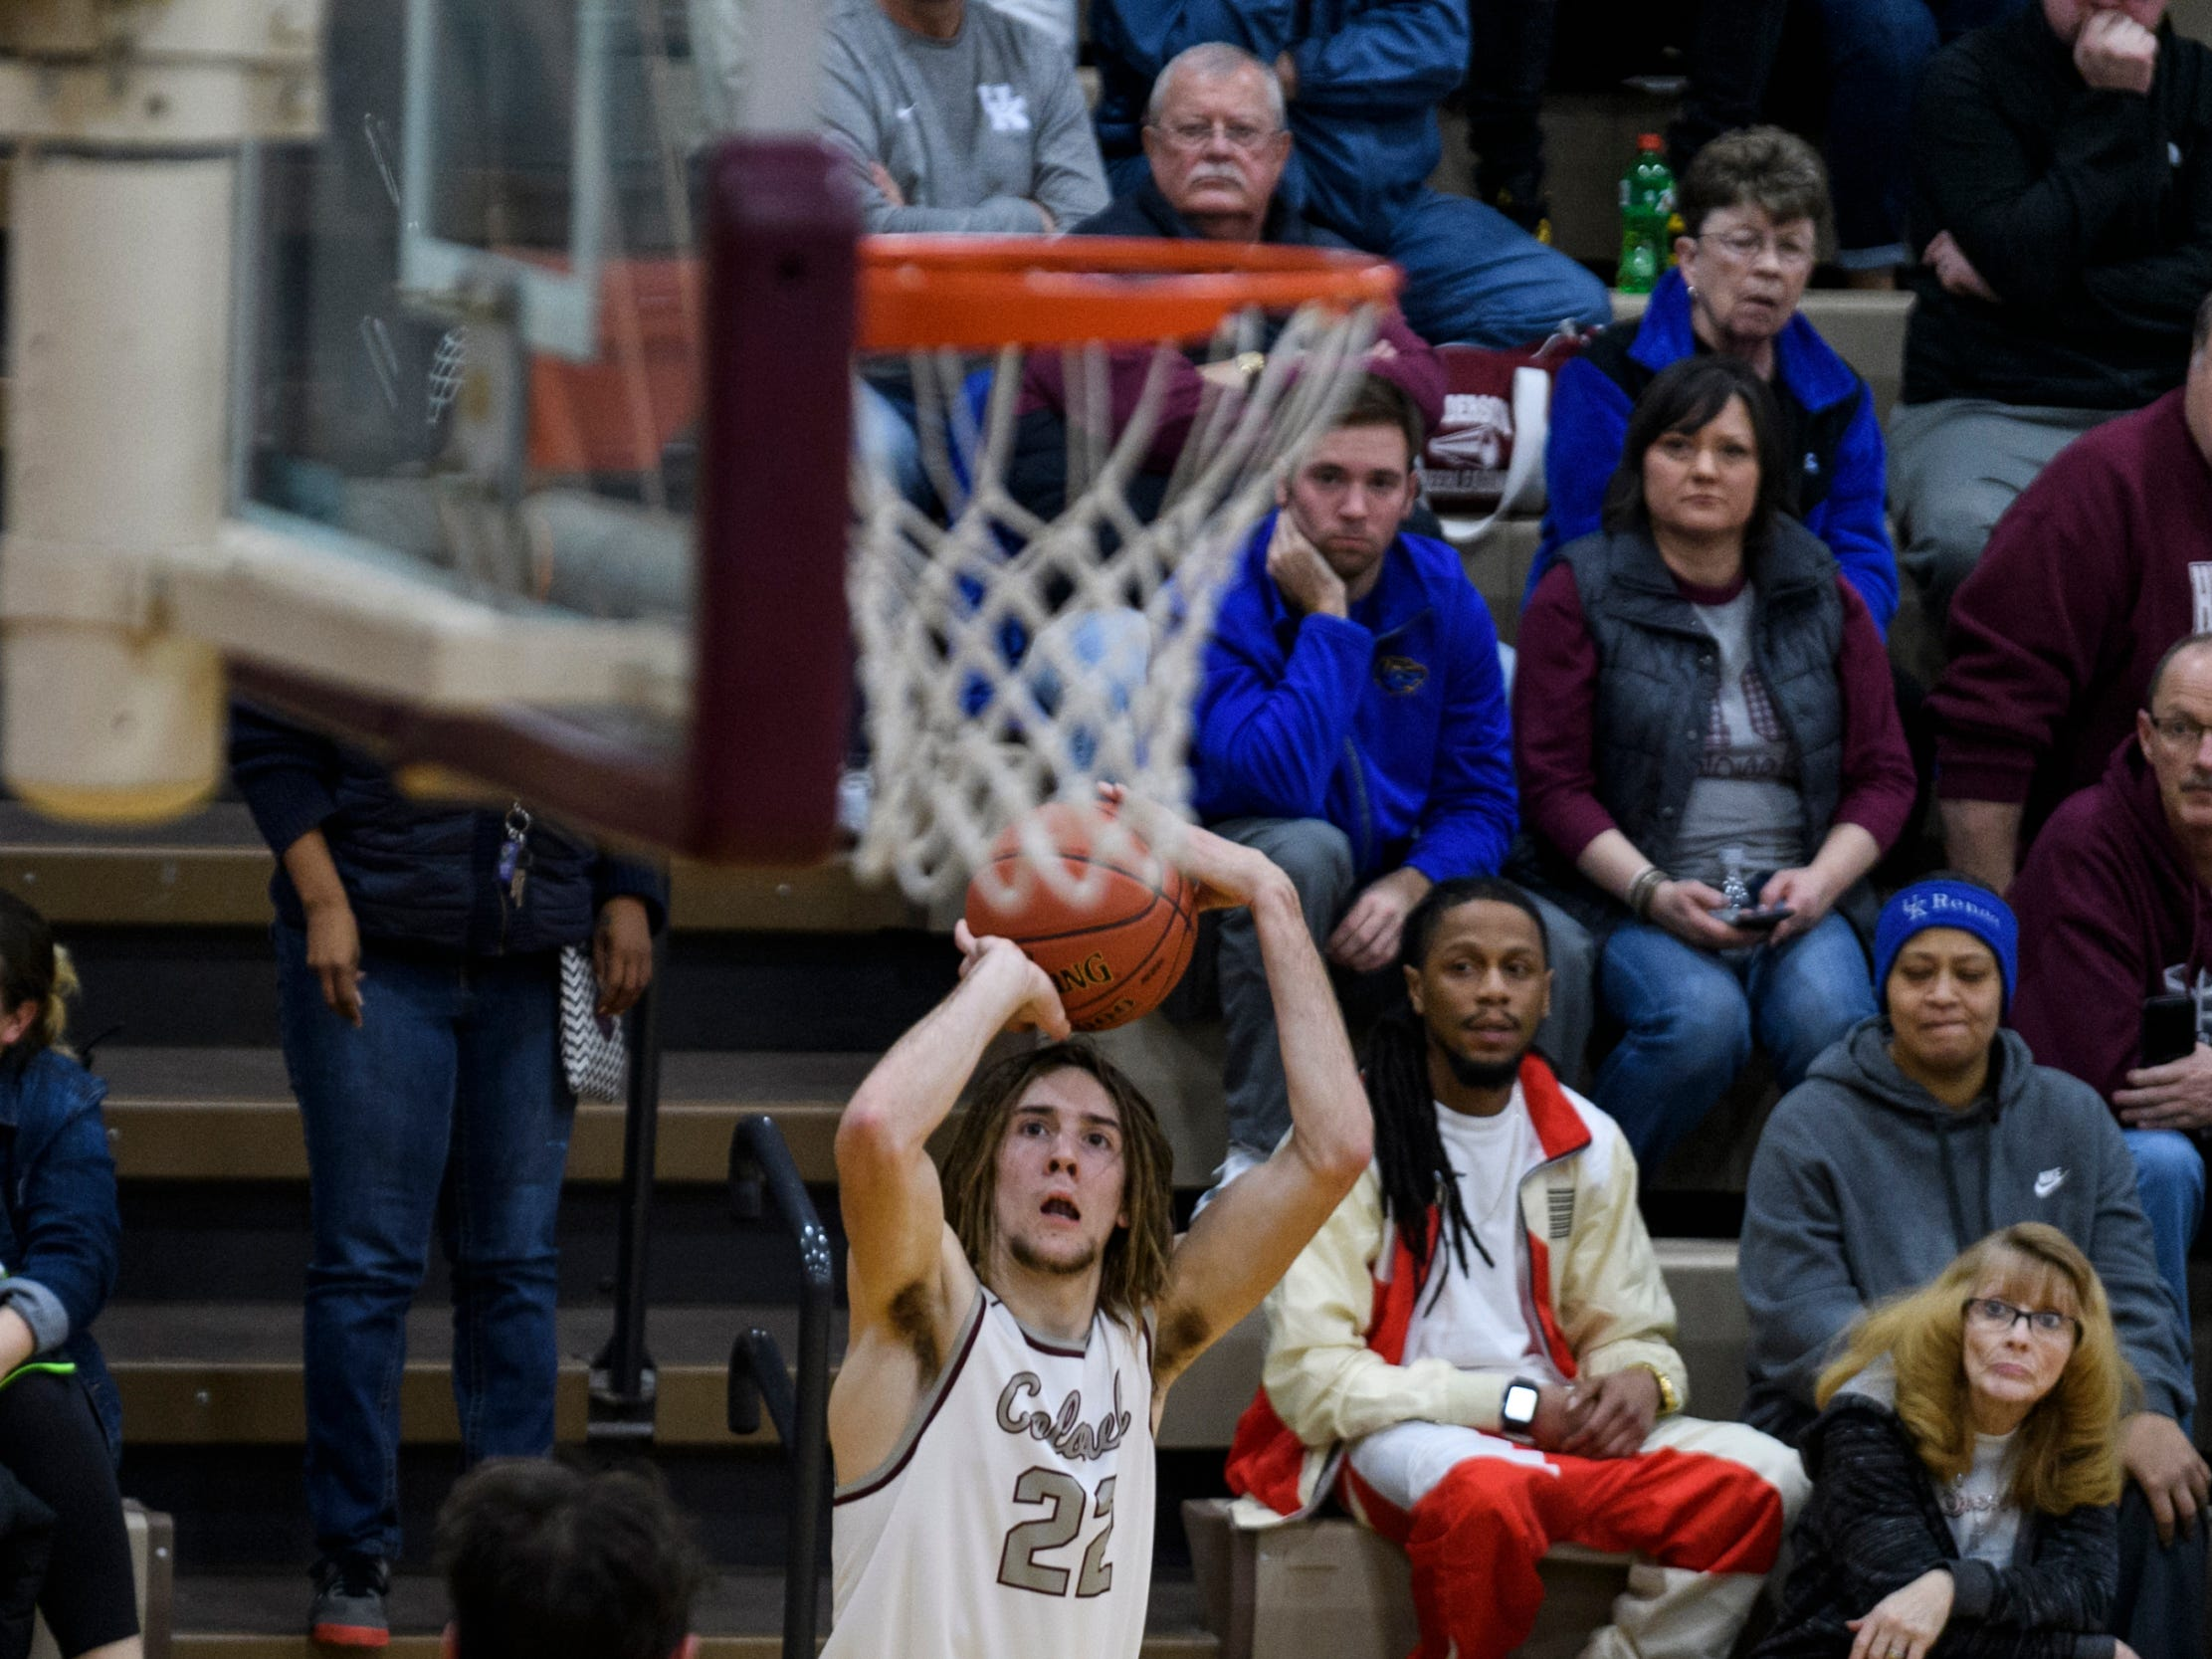 Henderson's Nick Cissell (22) makes a three-pointer during the second quarter against the Crittenden County Rockets at Henderson County High School in Henderson, Ky., Tuesday, Dec. 18, 2018.  The Colonels defeated the Rockets 88-52.